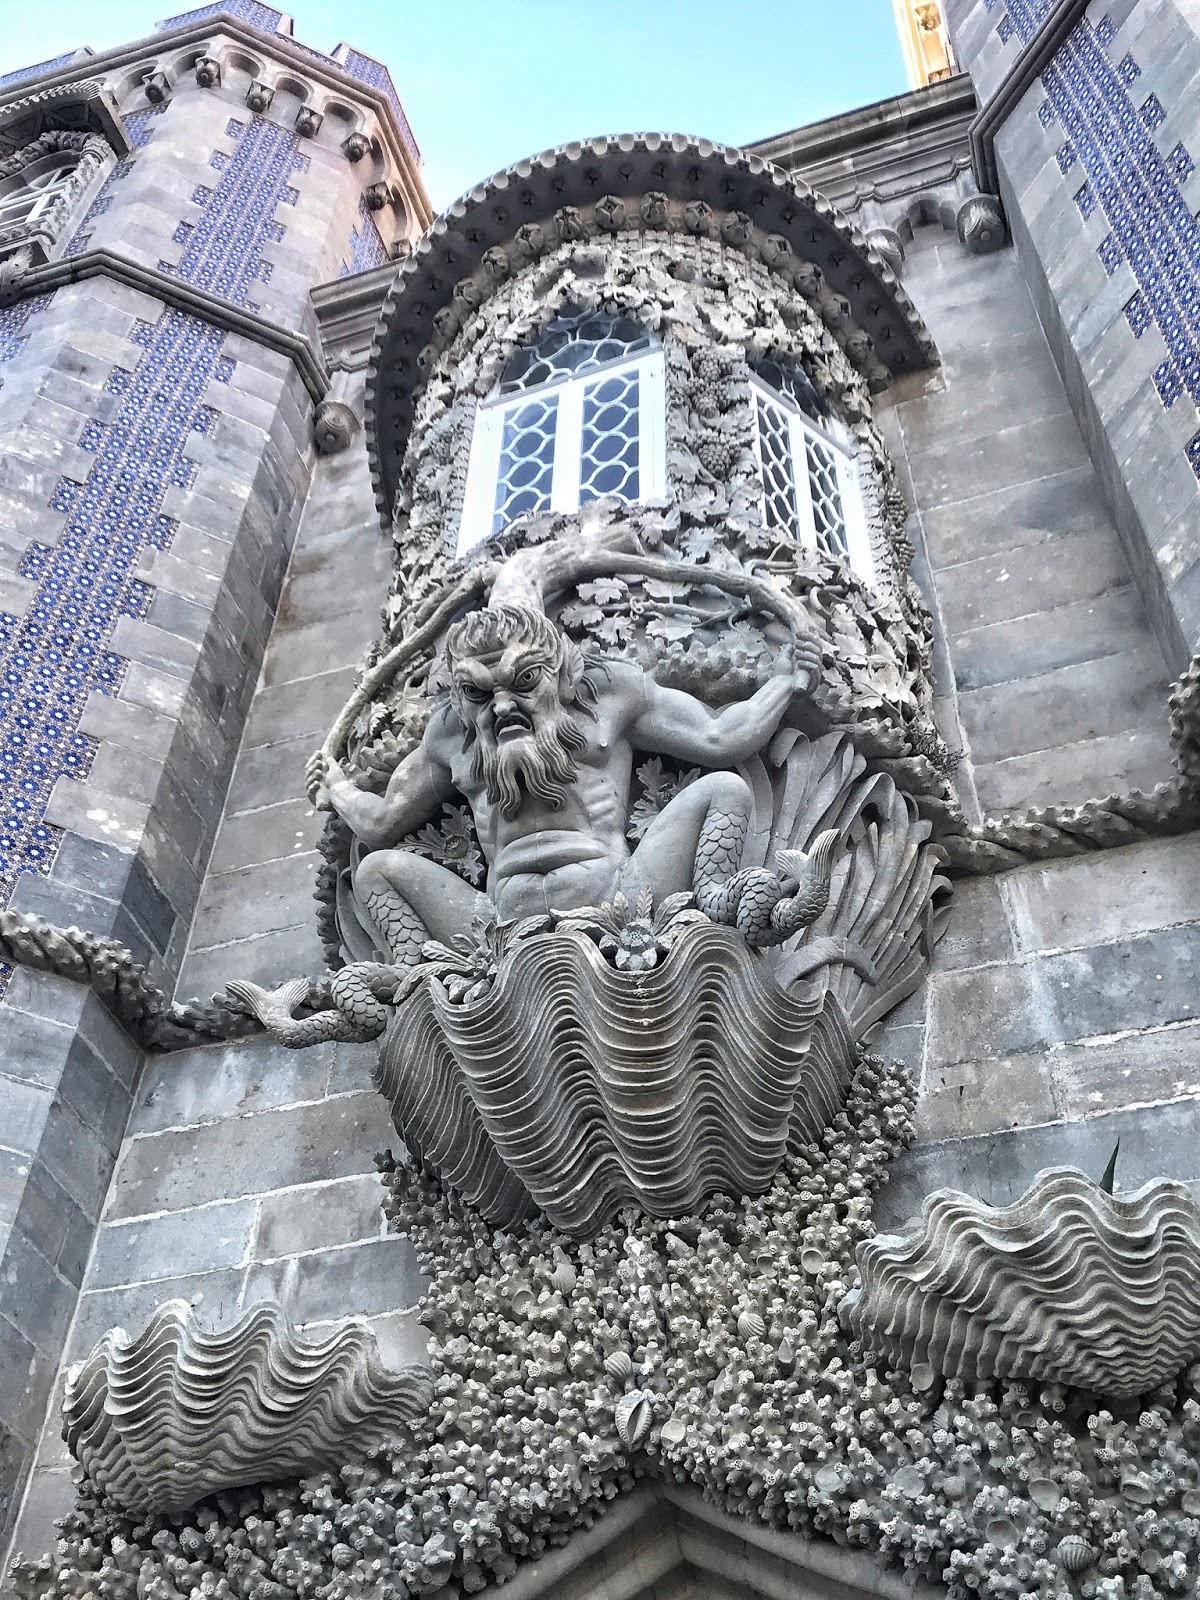 It's all in the details at Pena Palace